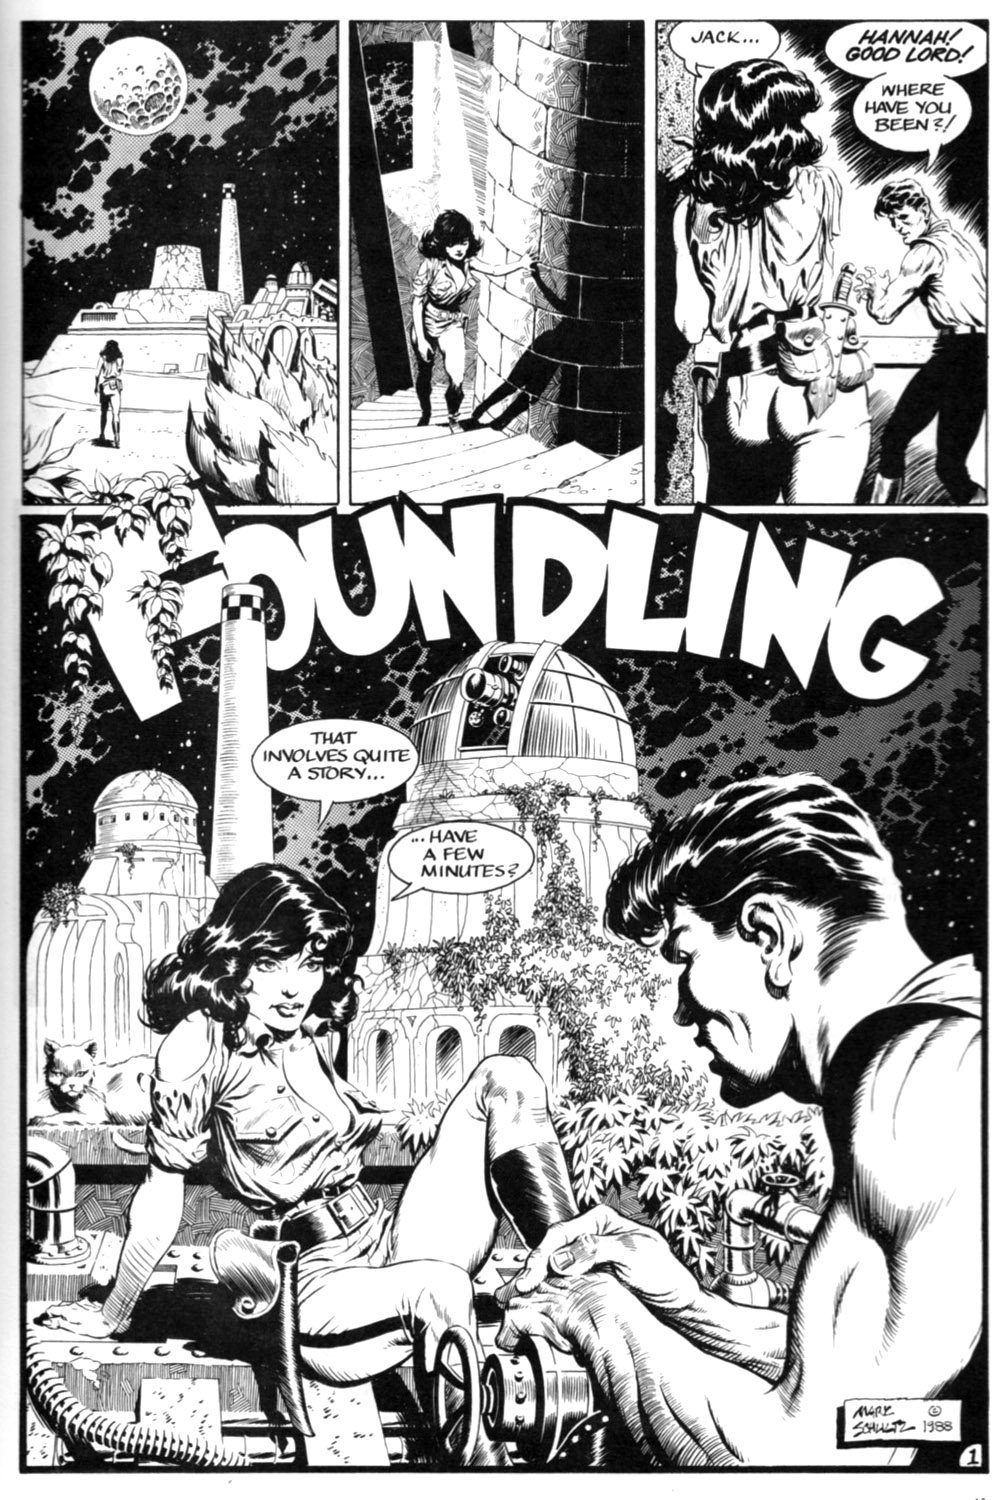 Conosciuto Cloud 109: Passing On The Baton - The Amazing Mark Schultz HH28